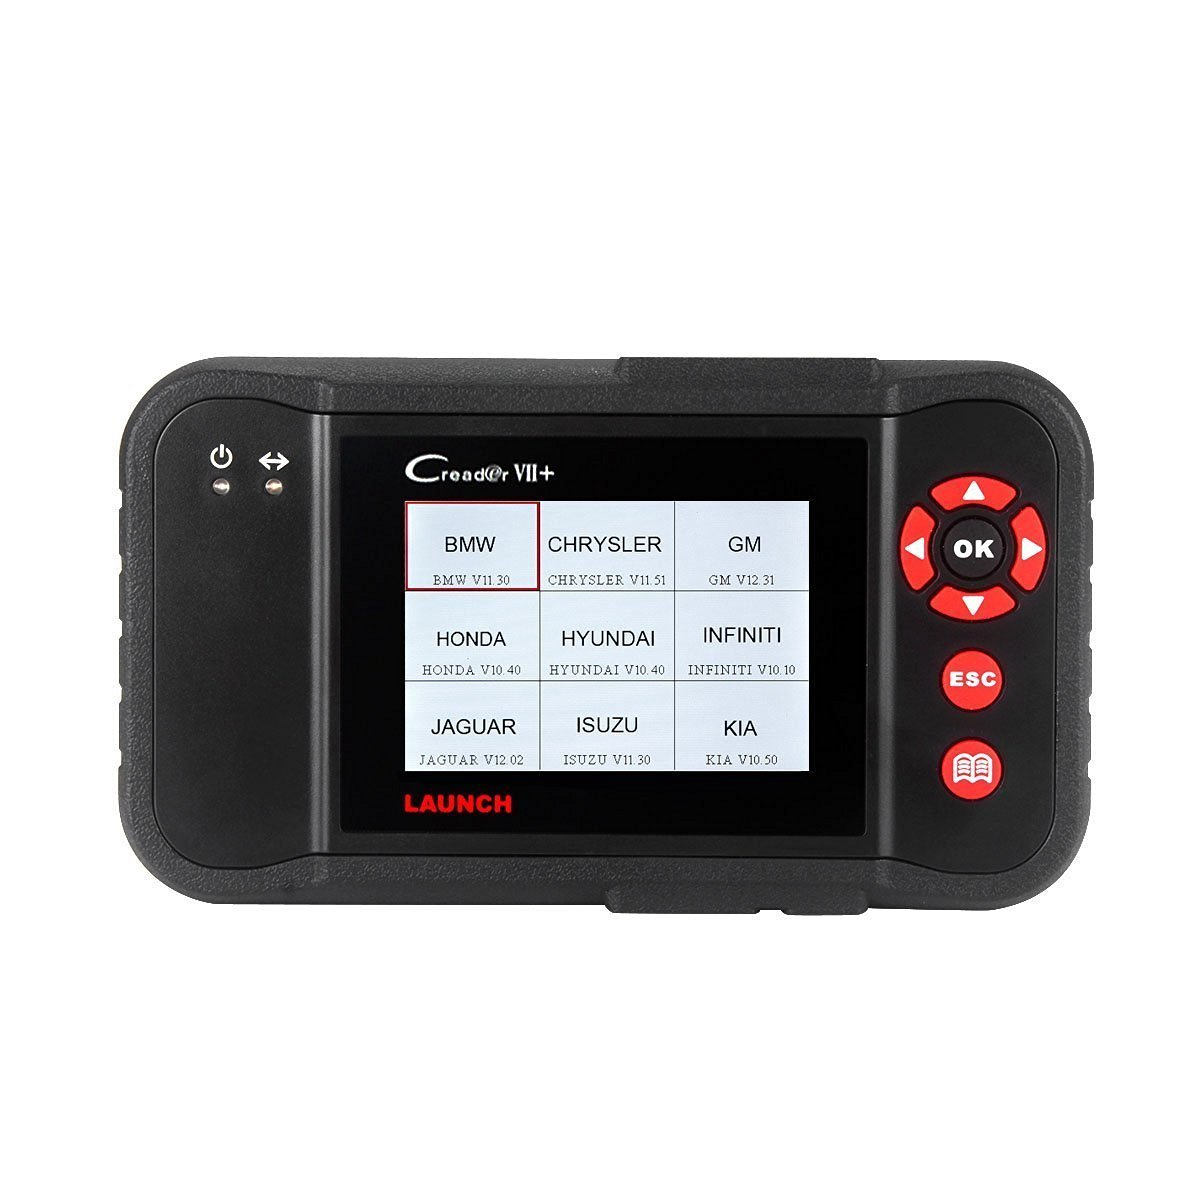 Launch X431 Creader VII+ (CRP123) Auto Code Reader EOBD, OBD2 Scanner Scan Tool Testing Engine/Transmission/ABS/Airbag System Update via PC